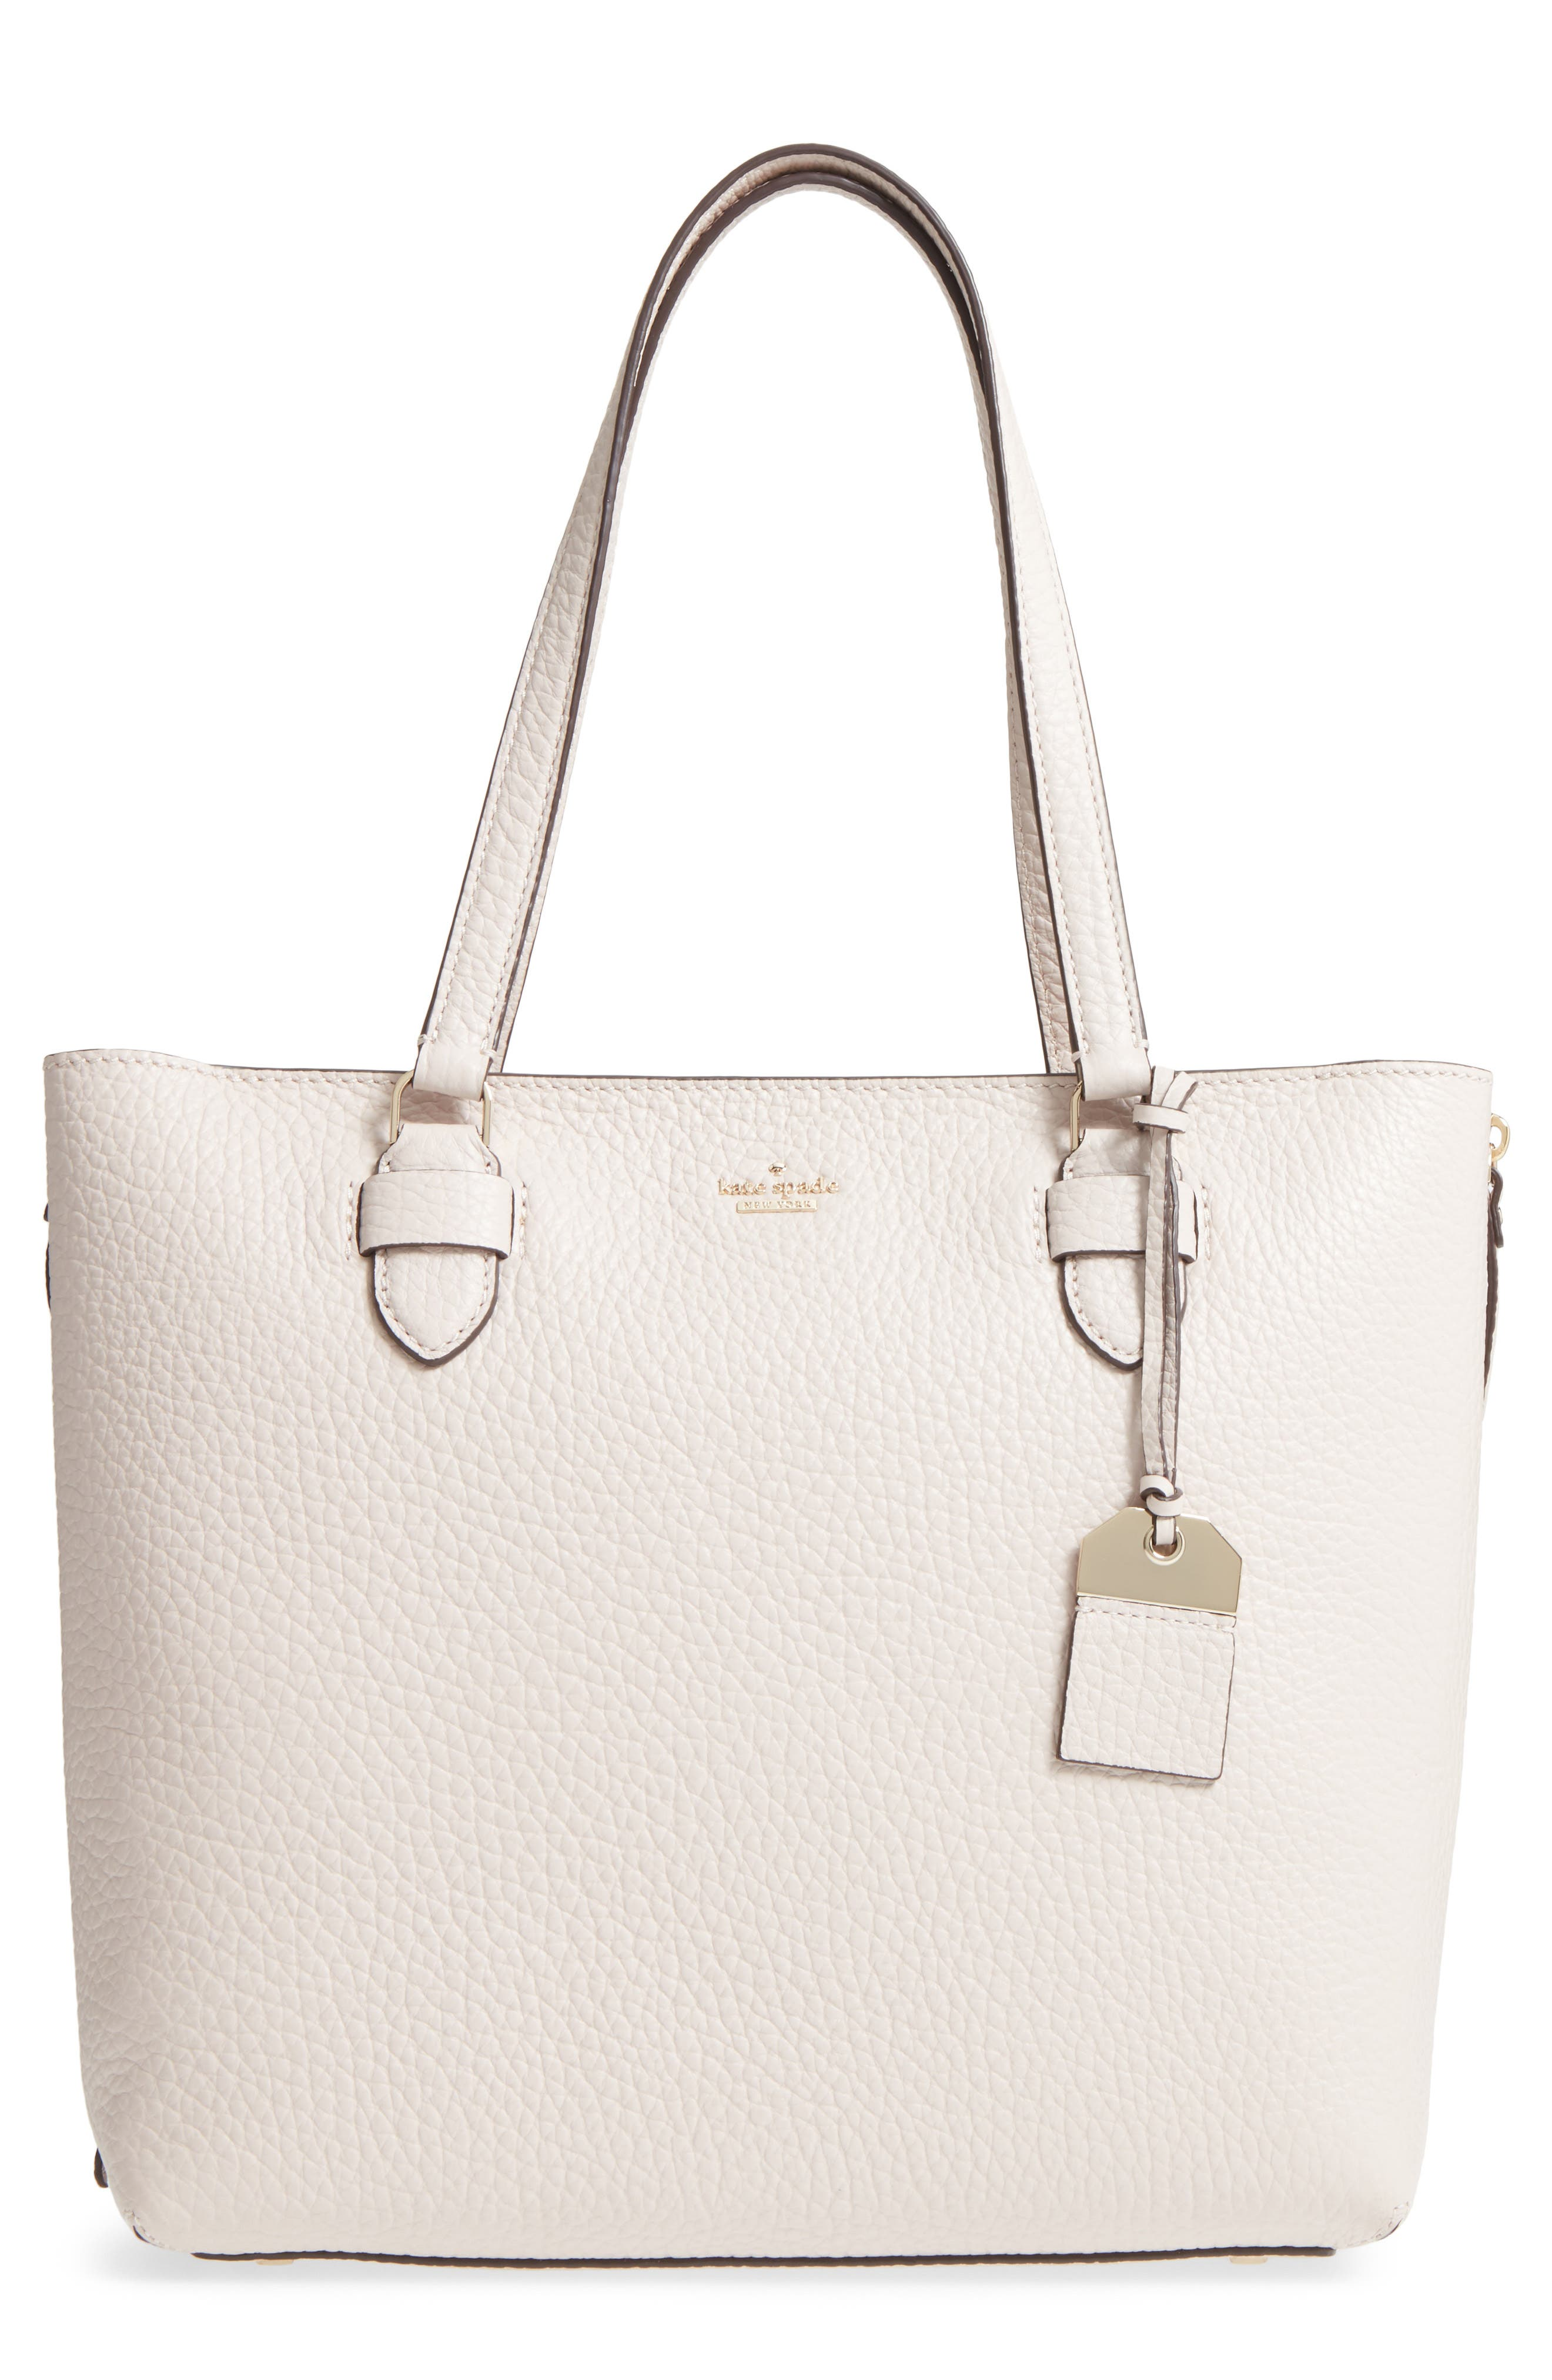 carter street - selena leather tote,                             Main thumbnail 2, color,